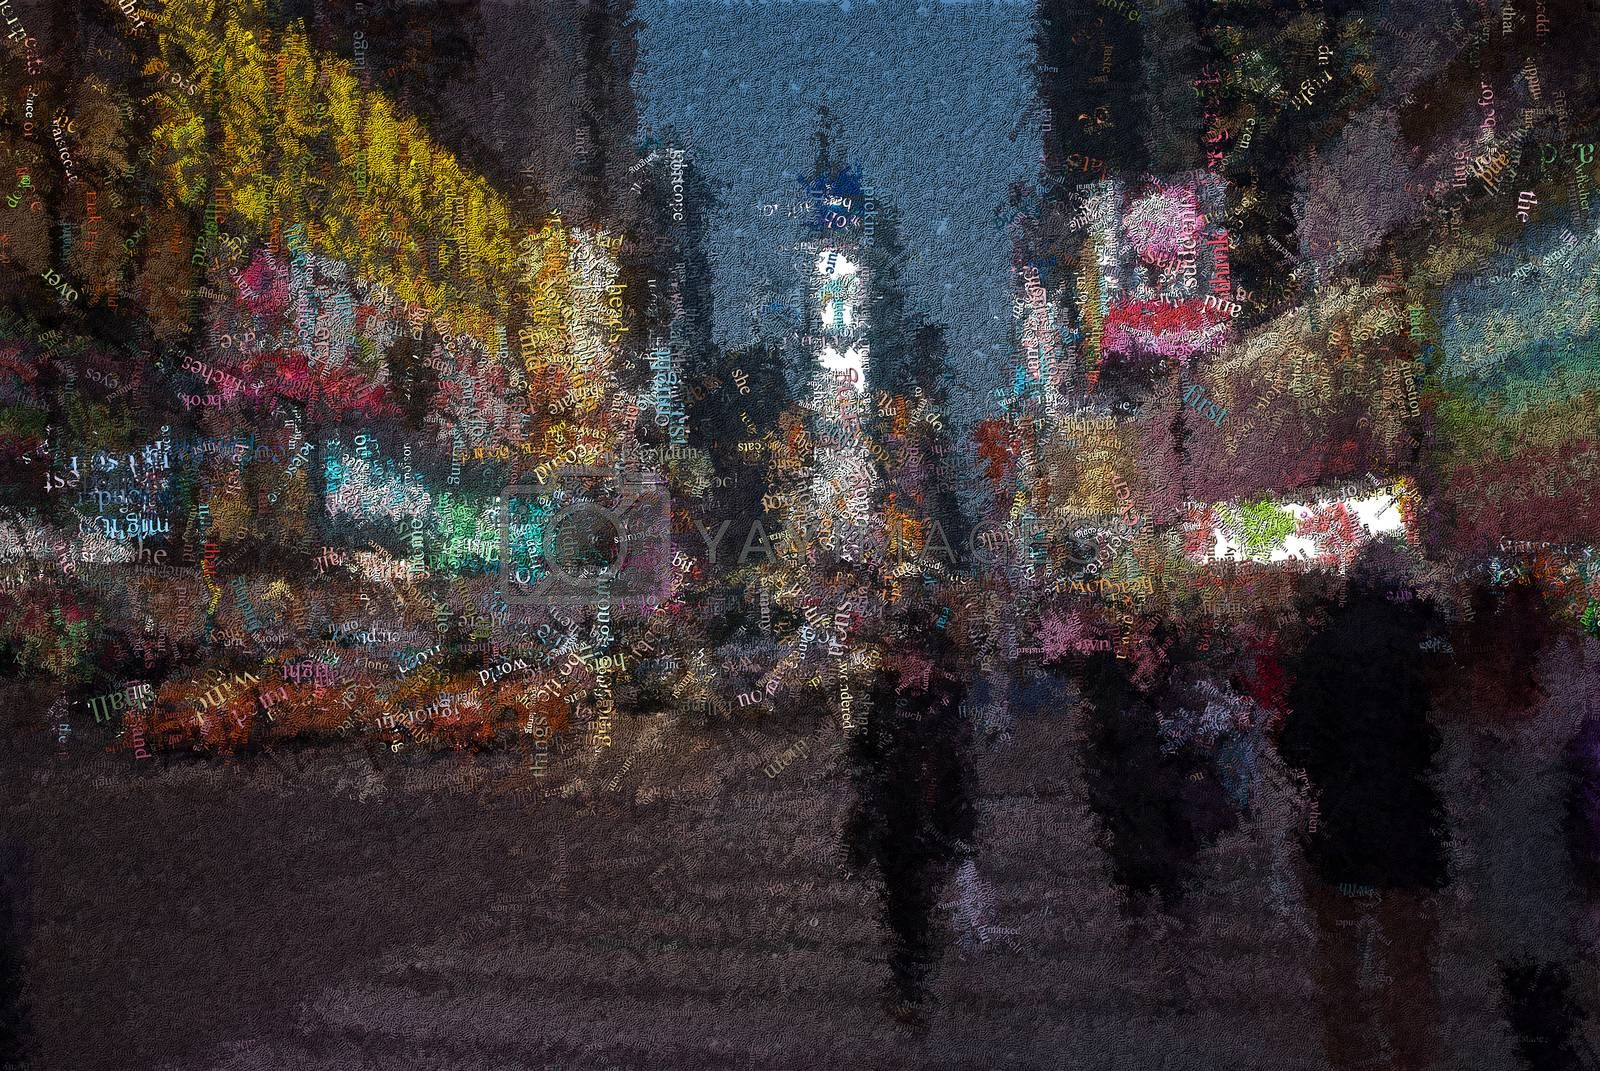 Time square. New York. Image composed entirely of words. 3D rendering